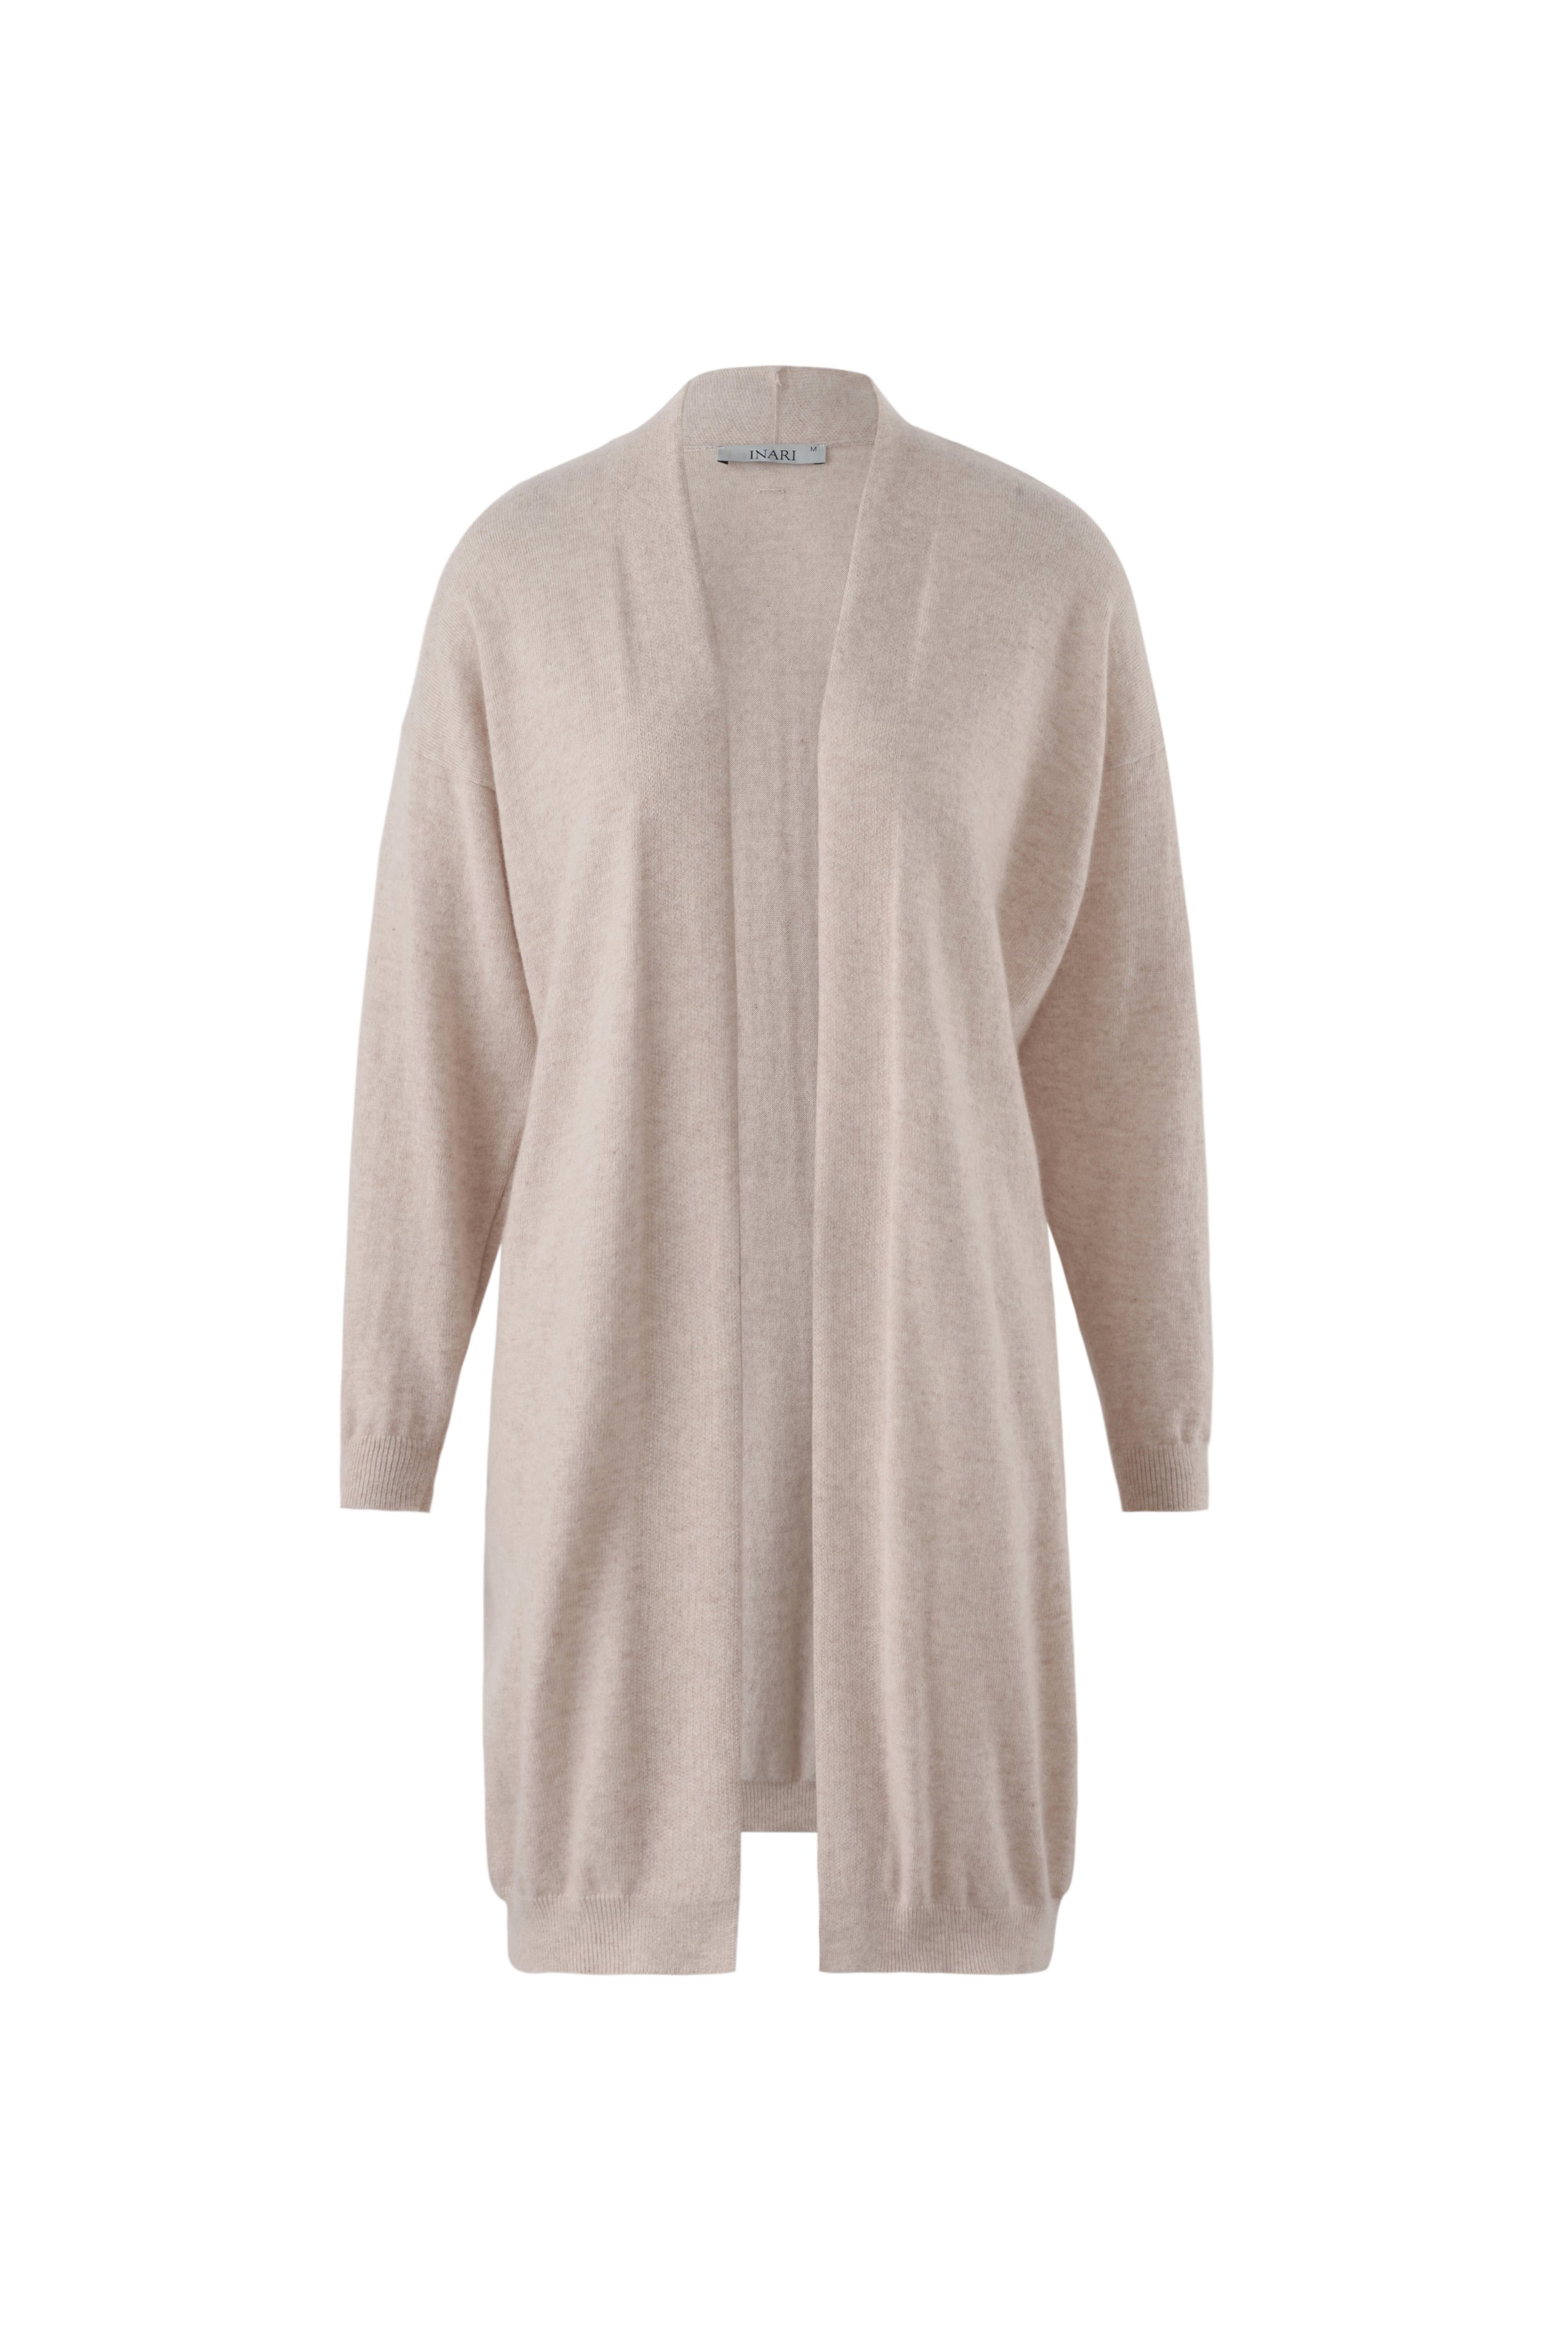 Inari Women's beige cashmere cardigan- front side - 100% high-quality cashmere